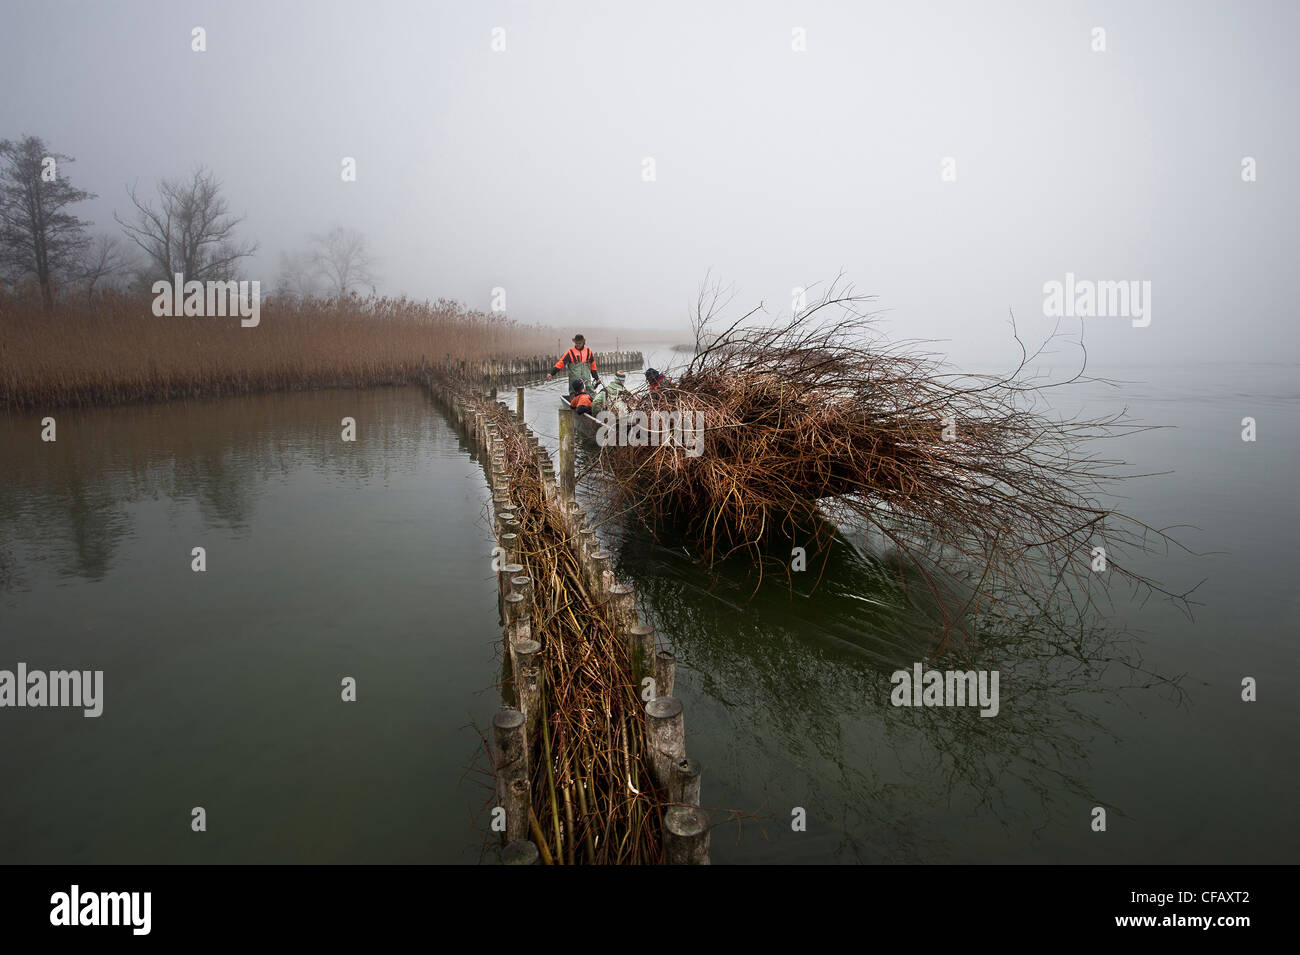 bank protection, lake of Biel, lake, pastures, willows, nature, nature conservation, unemployed person's project, - Stock Image